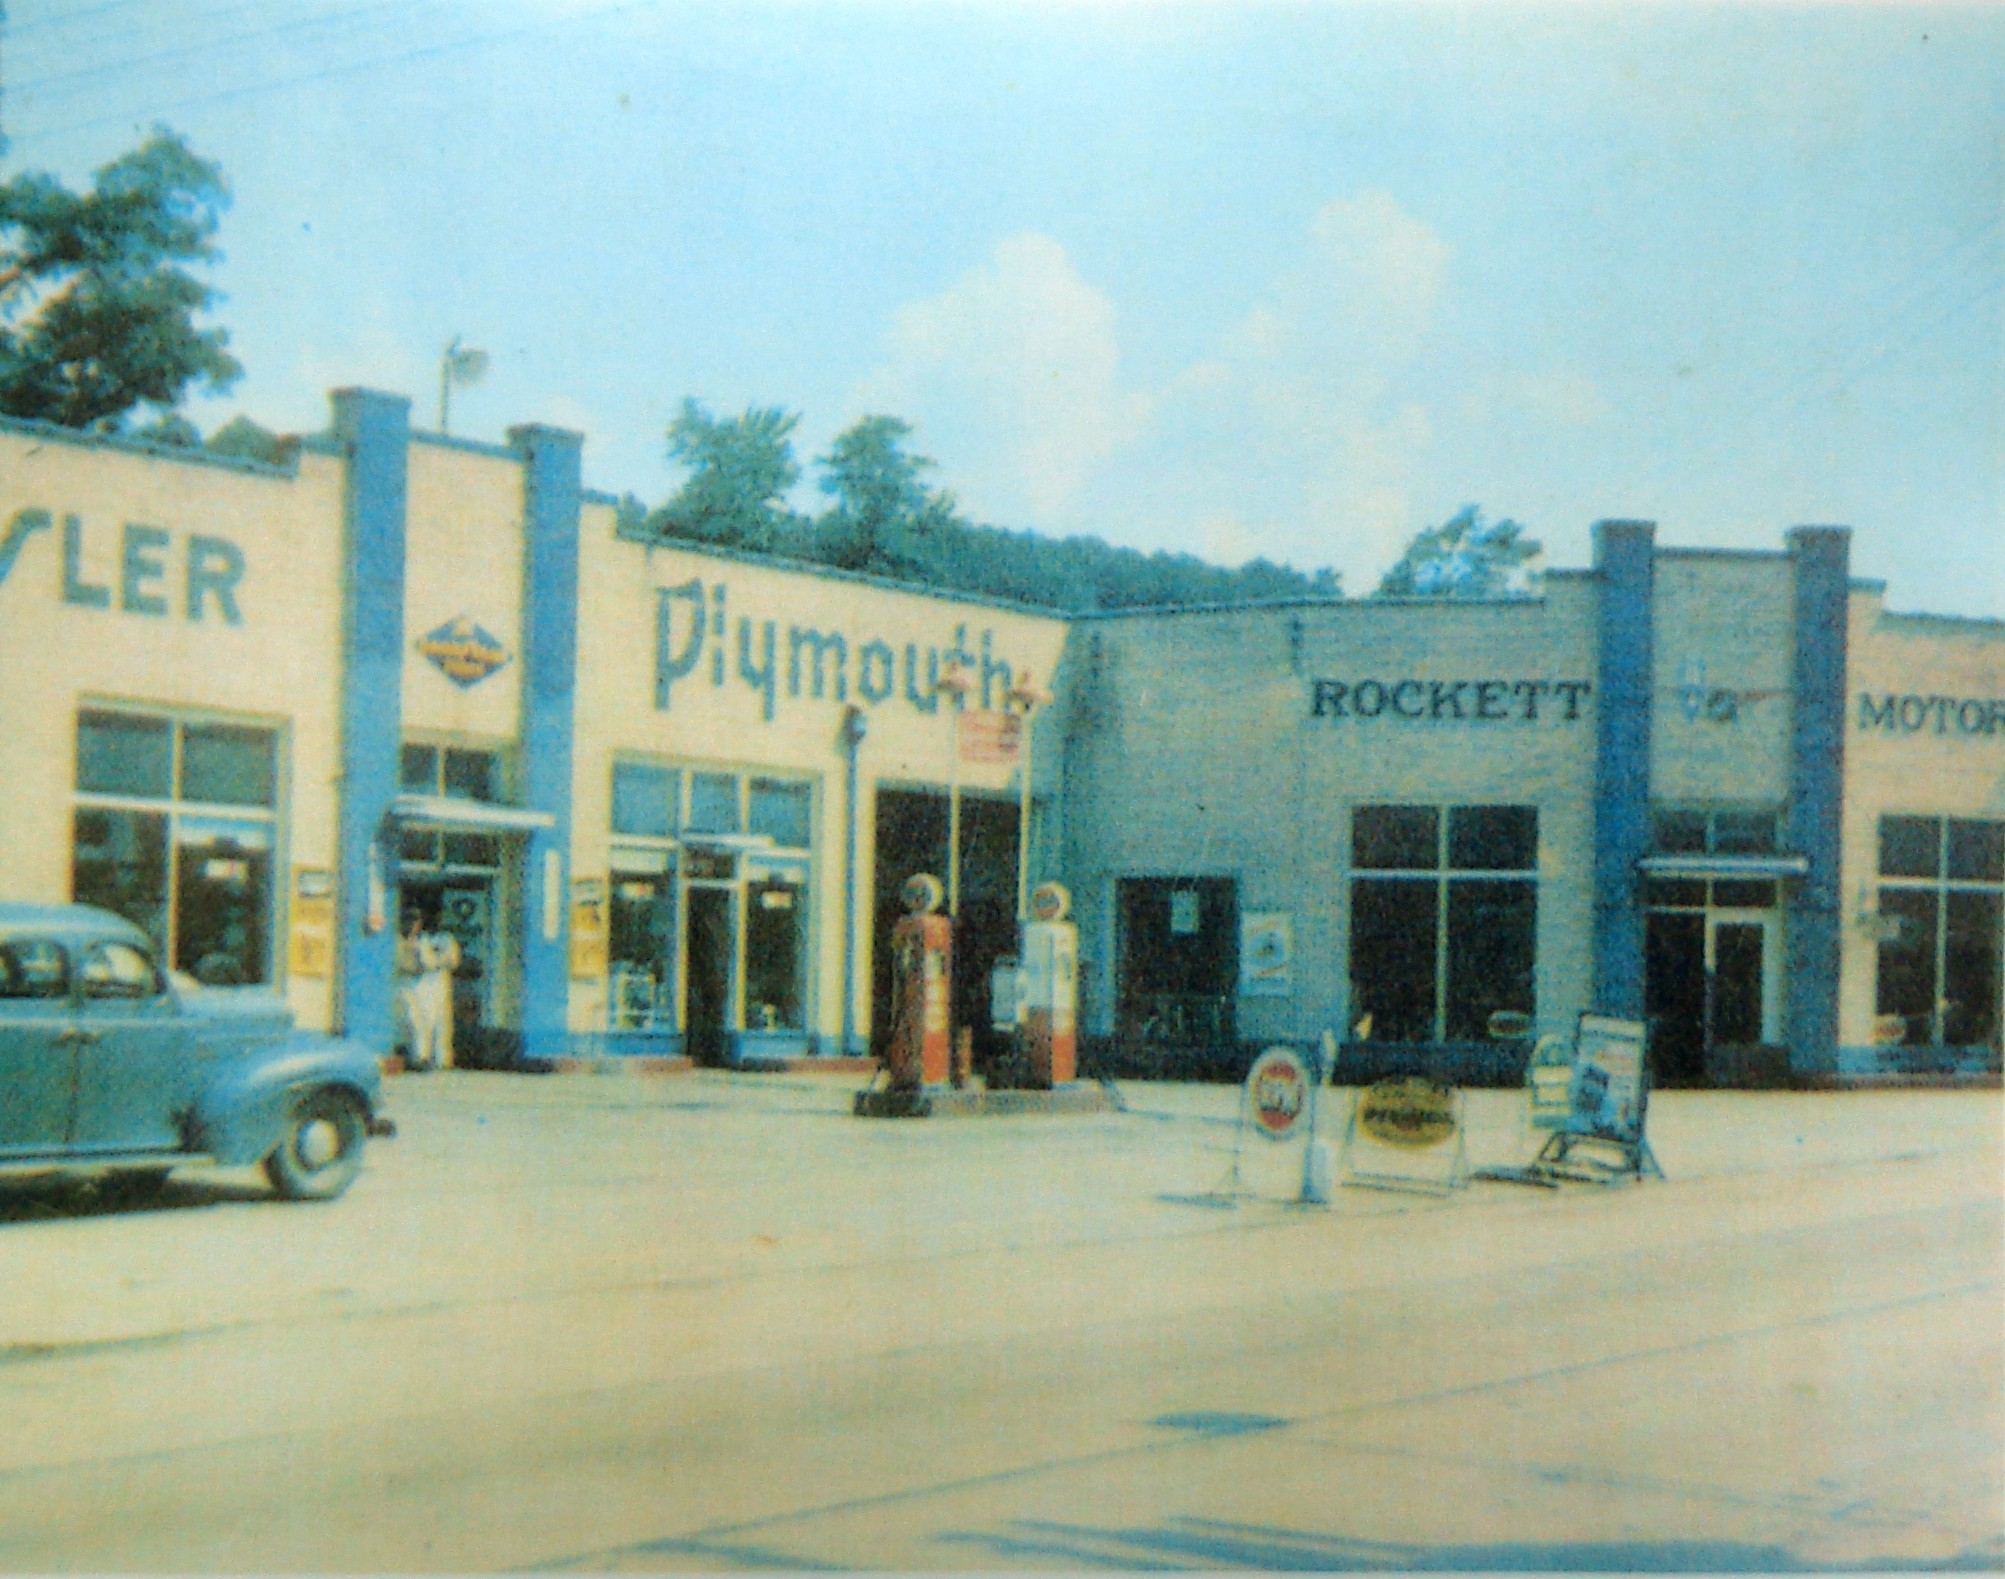 Rockett Motors in Old Fort (present location of Old Fort Mountain Music). Jep Gibbs was employed here early in her working life. (Photo courtesy of Bill Nichols, John's Market Collection)